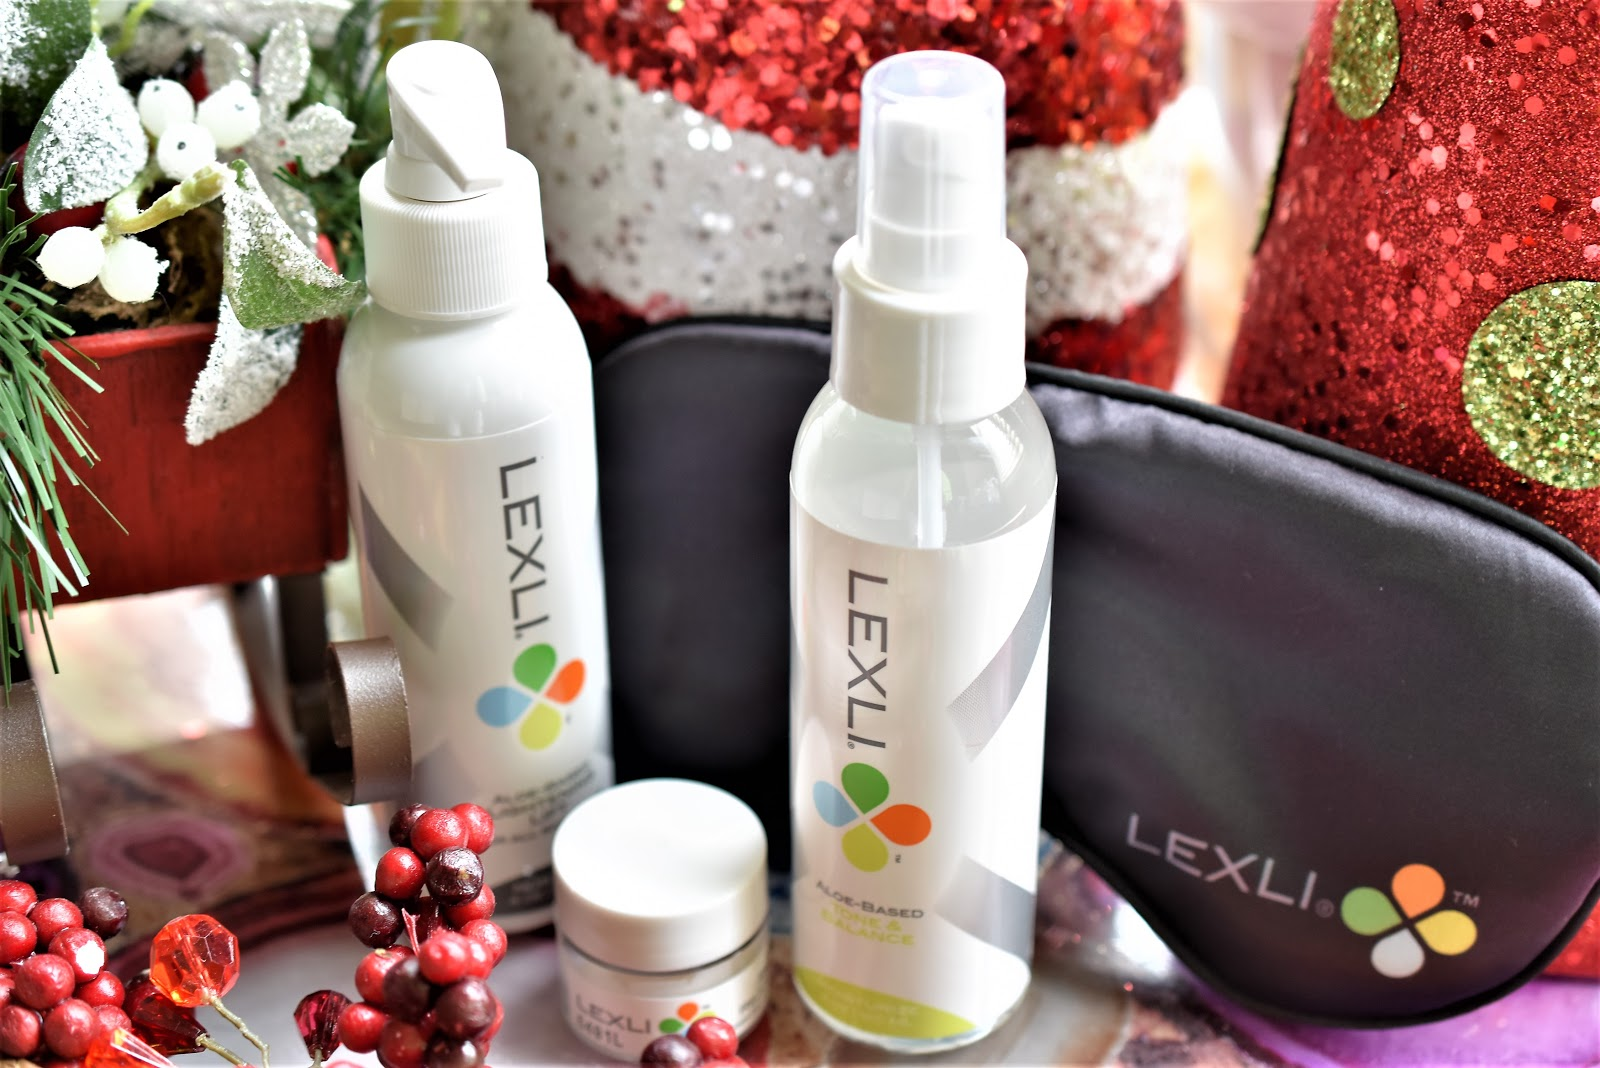 Giveaway: Keep Your Skin Looking Flawless and Rejuvenated with Lexli's Holiday Rescue Kit